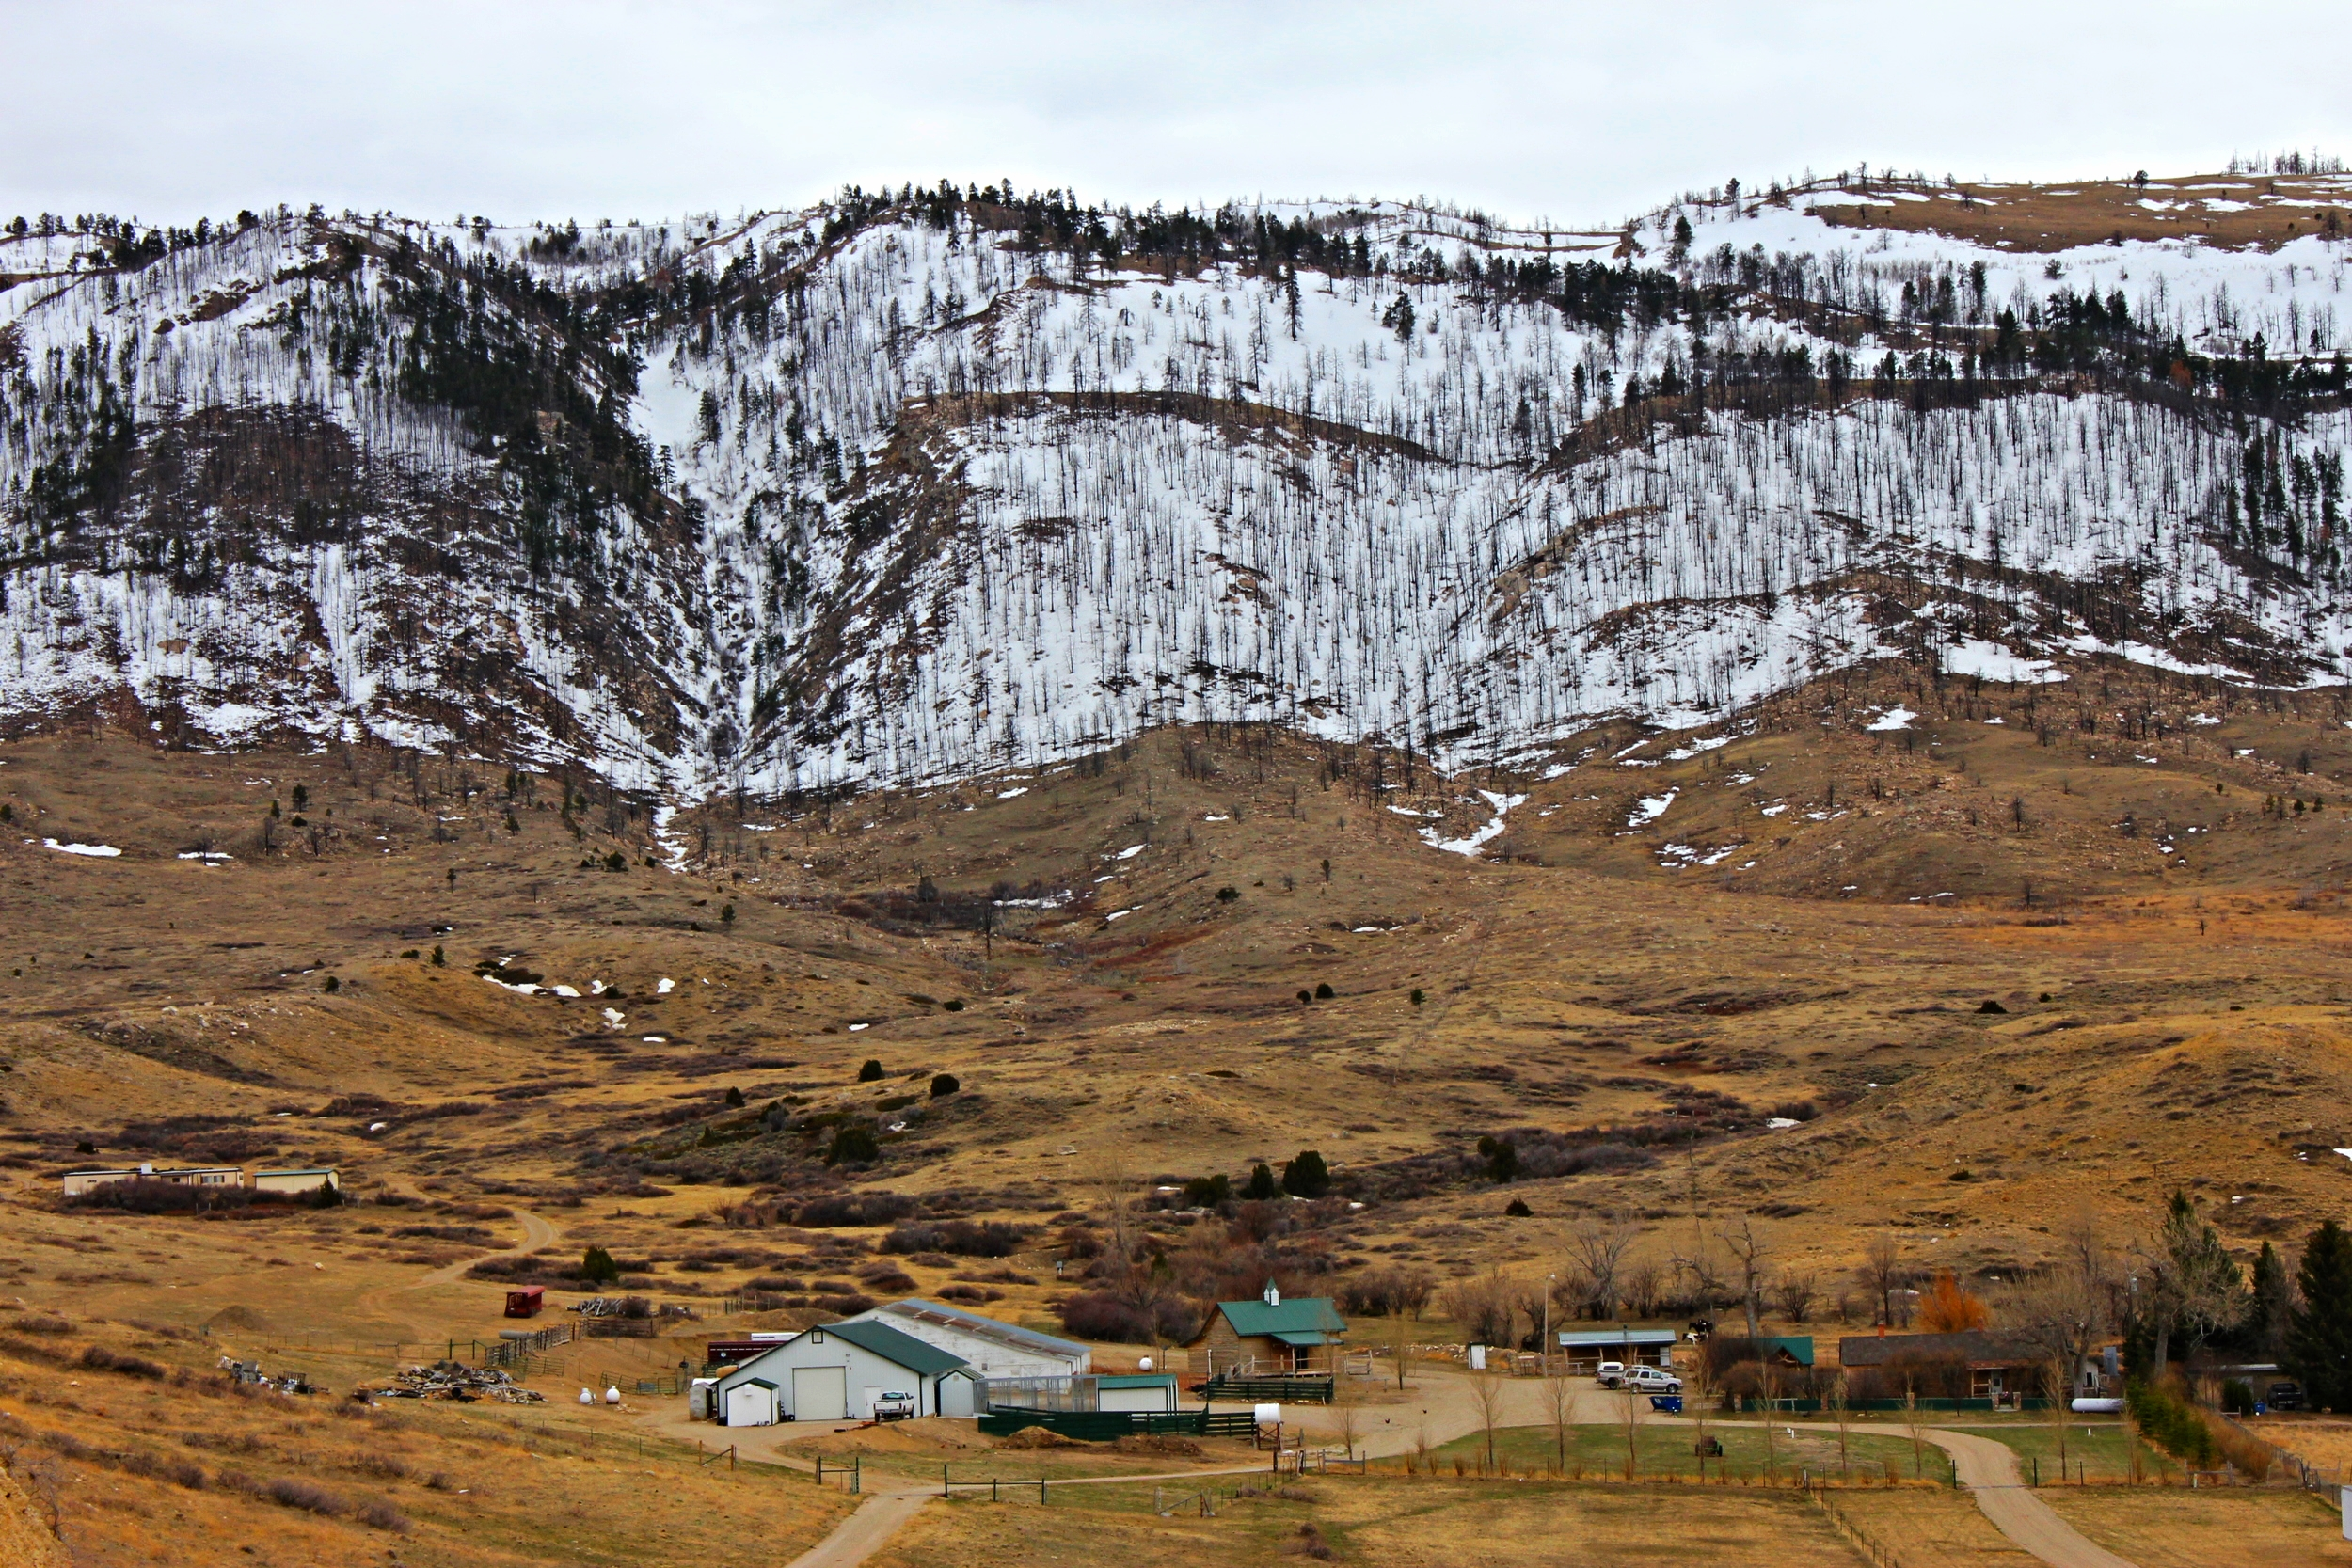 The Gothberg Ranch near Casper, originally settled in 1885, is just one example of how historic ranches preserve the integrity of the landscapes around them.